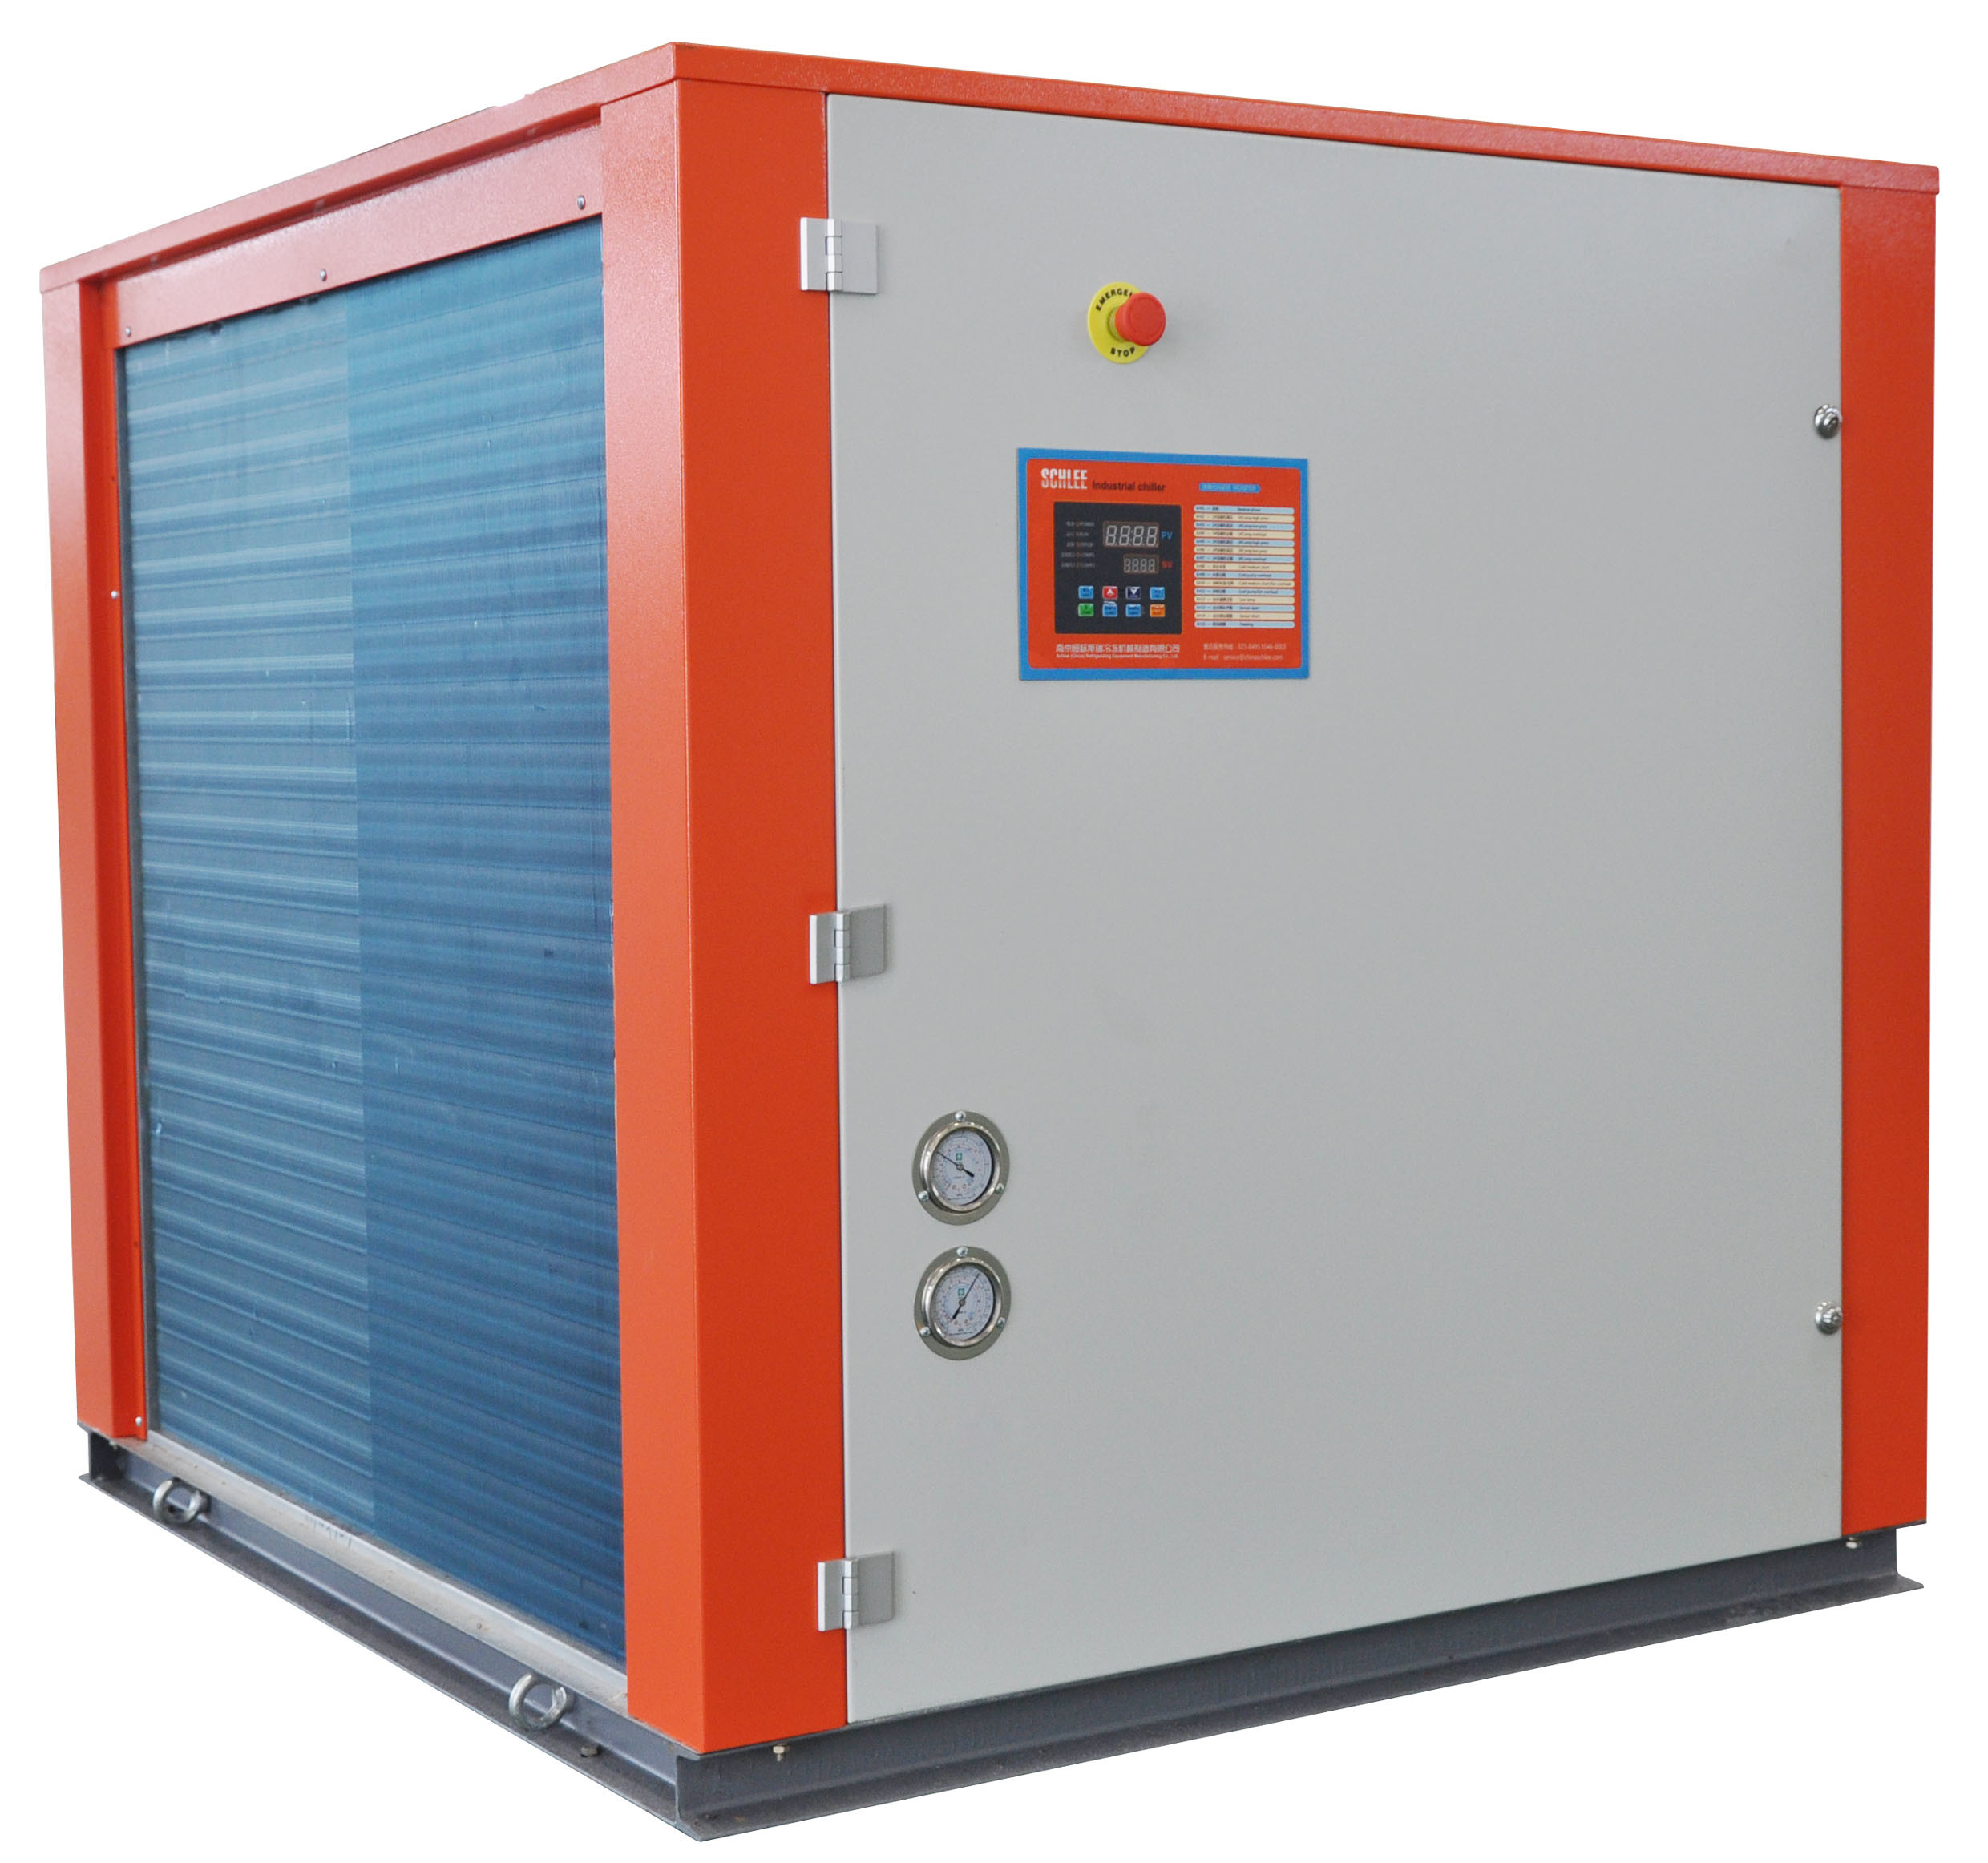 7.8kw Industrial Air Cooled Low Temperature Chiller